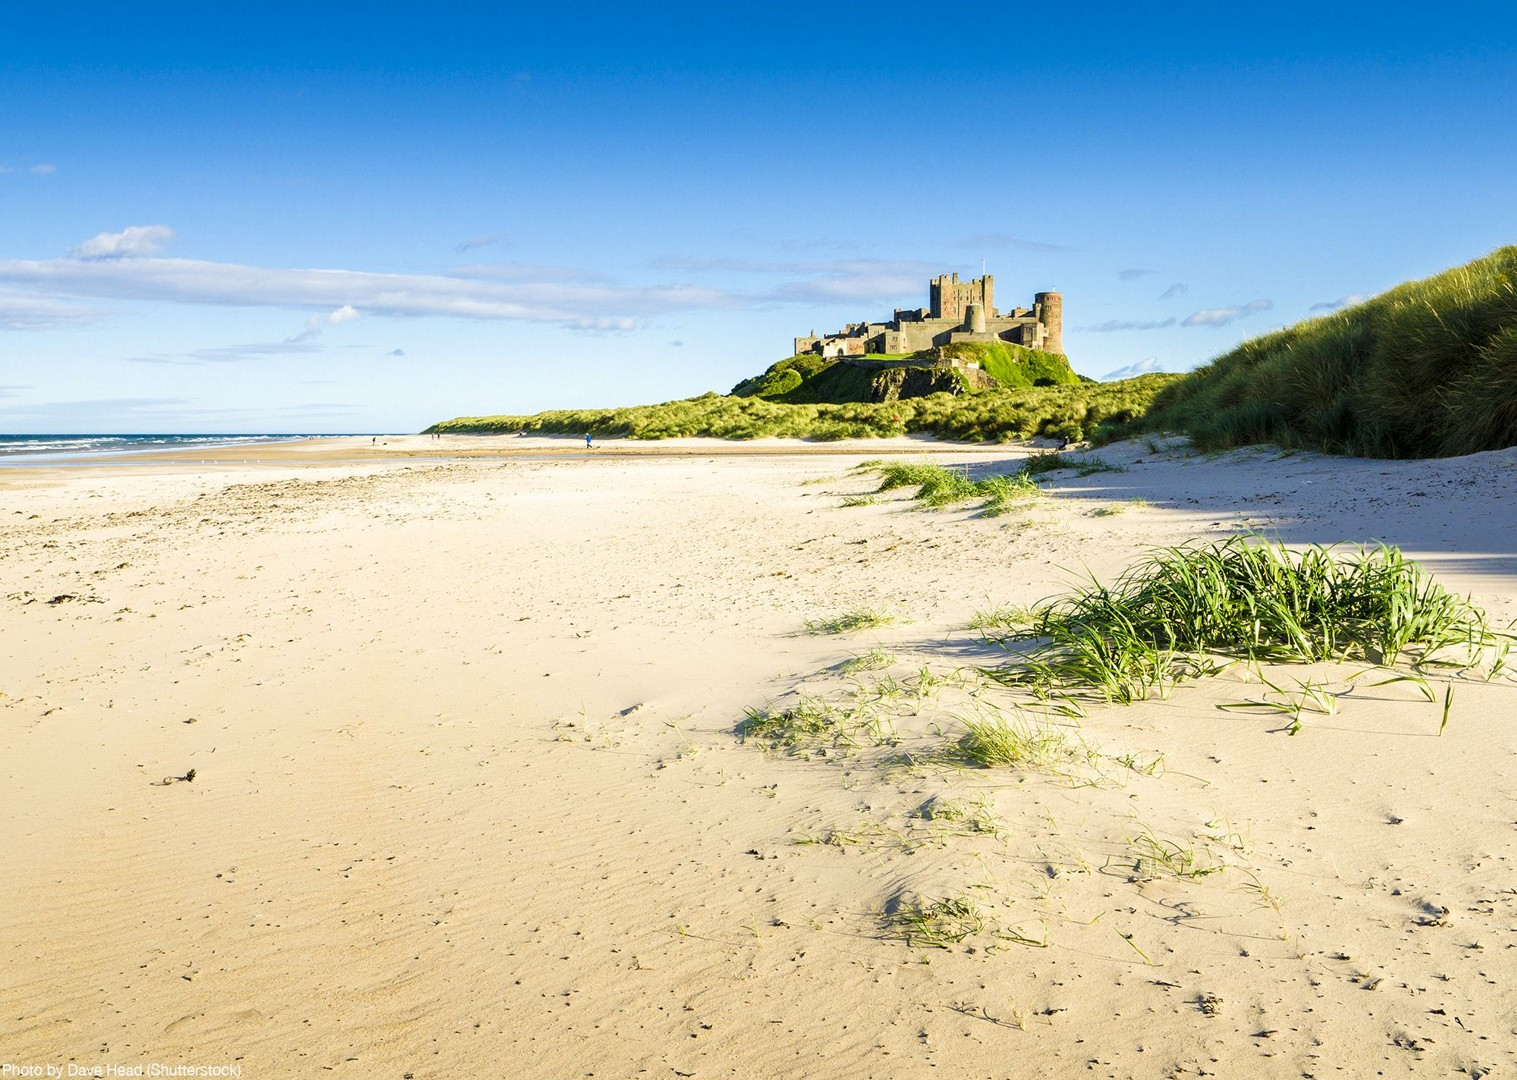 coast-beach-bike-tour-uk-self-guided-saddle-skedaddle-warkworth-castle.jpg - UK - Northumberland Coast - 4 Days Cycling - Self-Guided Family Cycling Holiday - Family Cycling